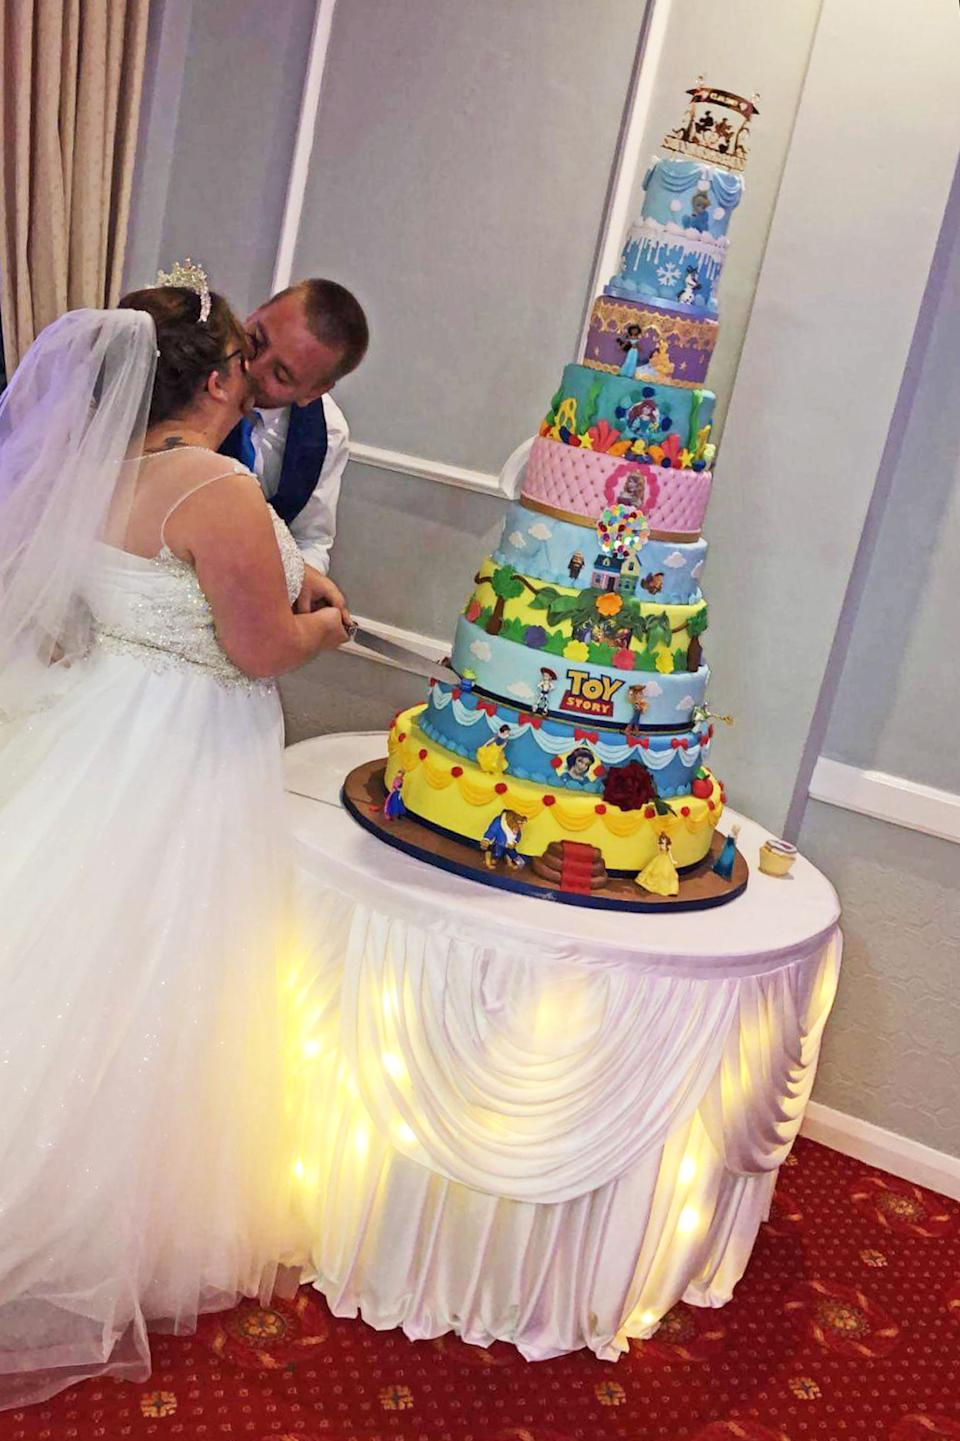 Disney superfans Siobhan Perdue, 24, and Sean, 29, opted for an unconventional wedding cake to match their film favourites theme. [Photo: Caters